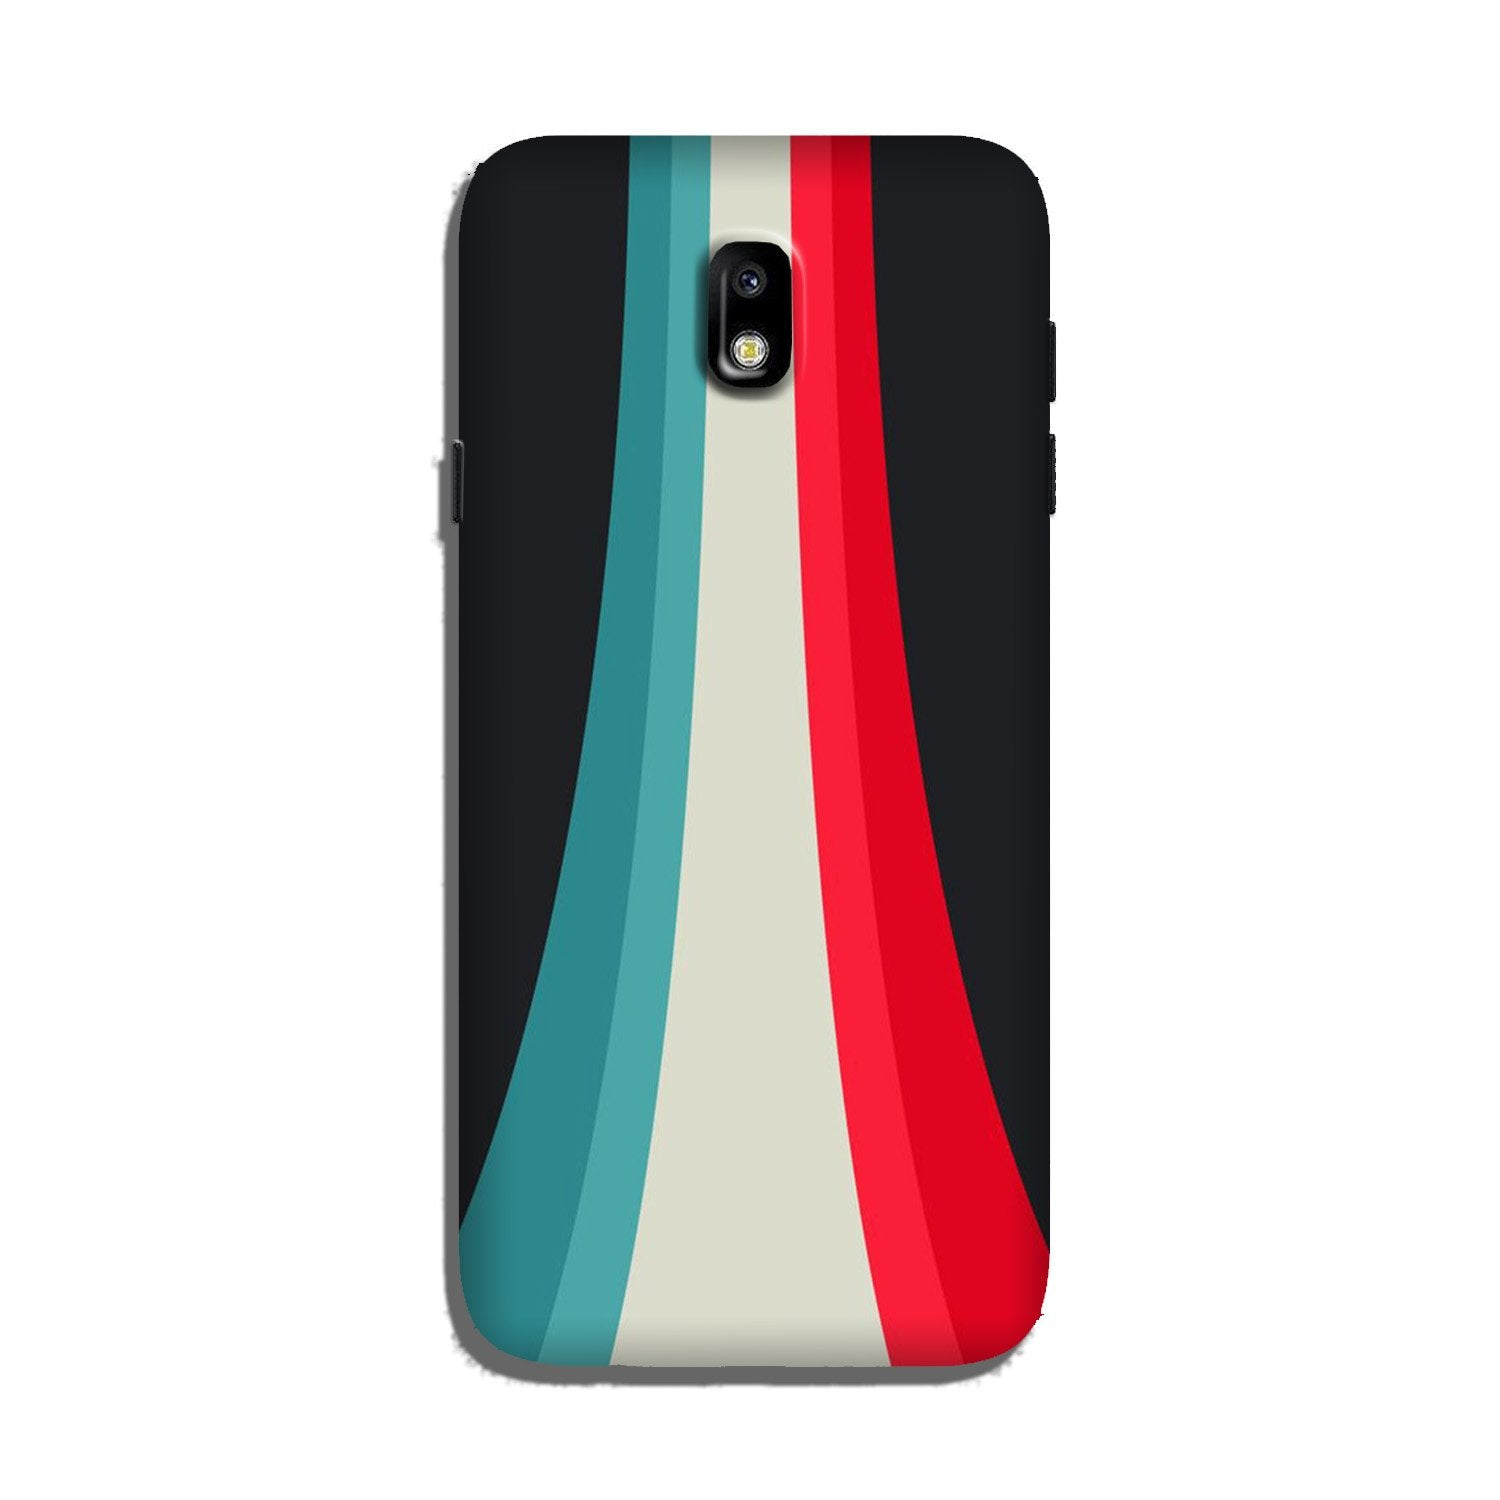 Slider Case for Galaxy J7 Pro (Design - 189)